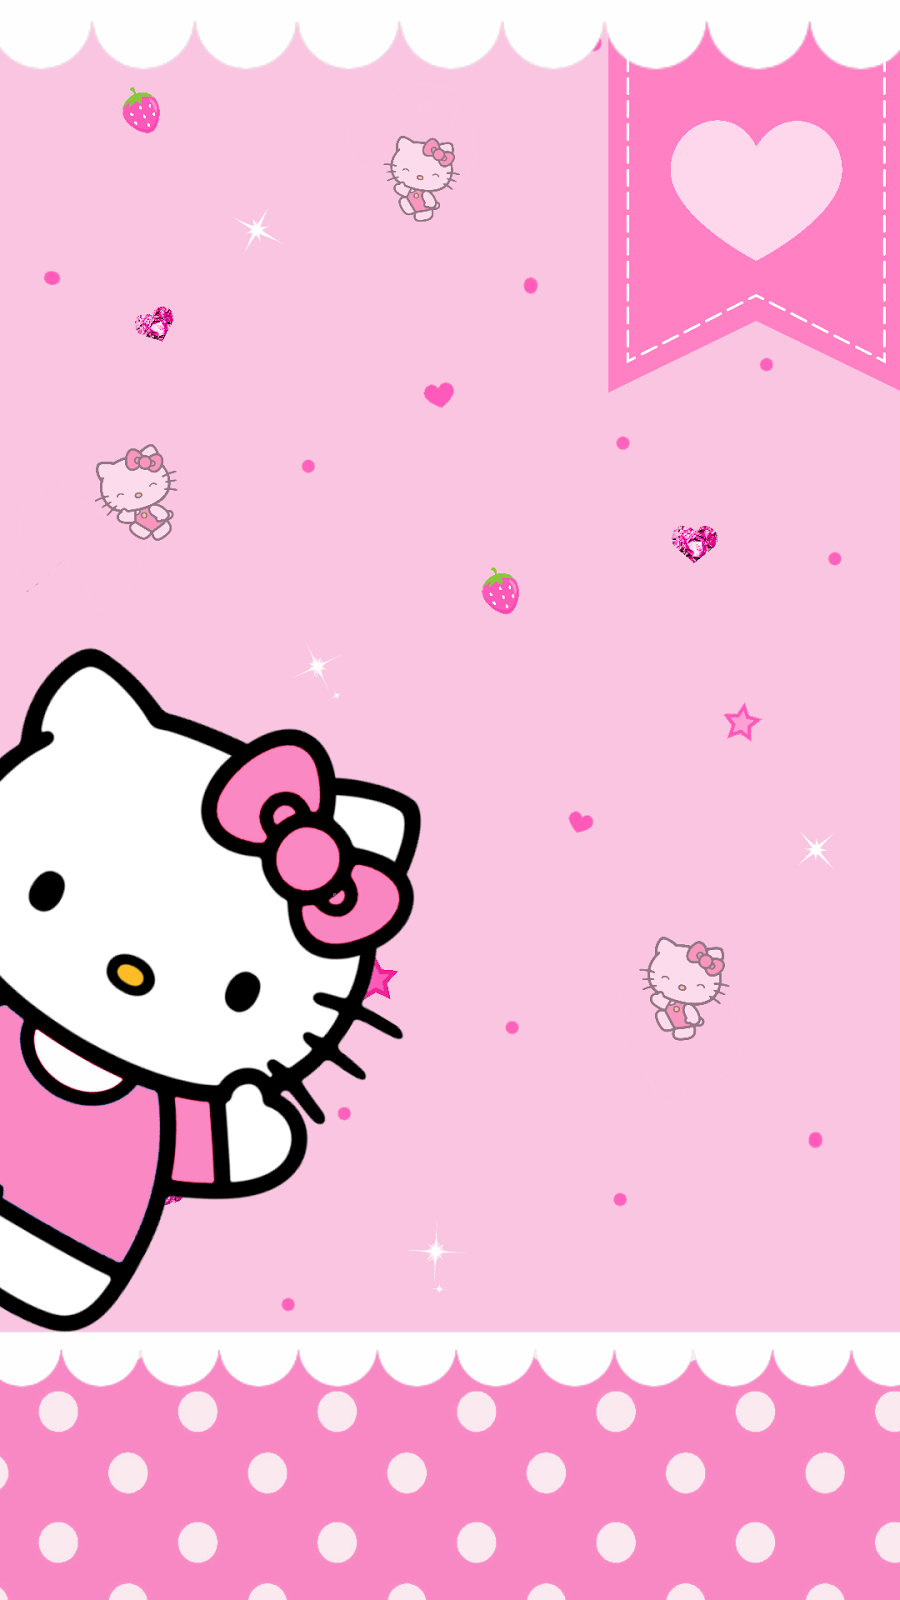 Pink Hello Kitty Wallpapers   Top Pink Hello Kitty 900x1600